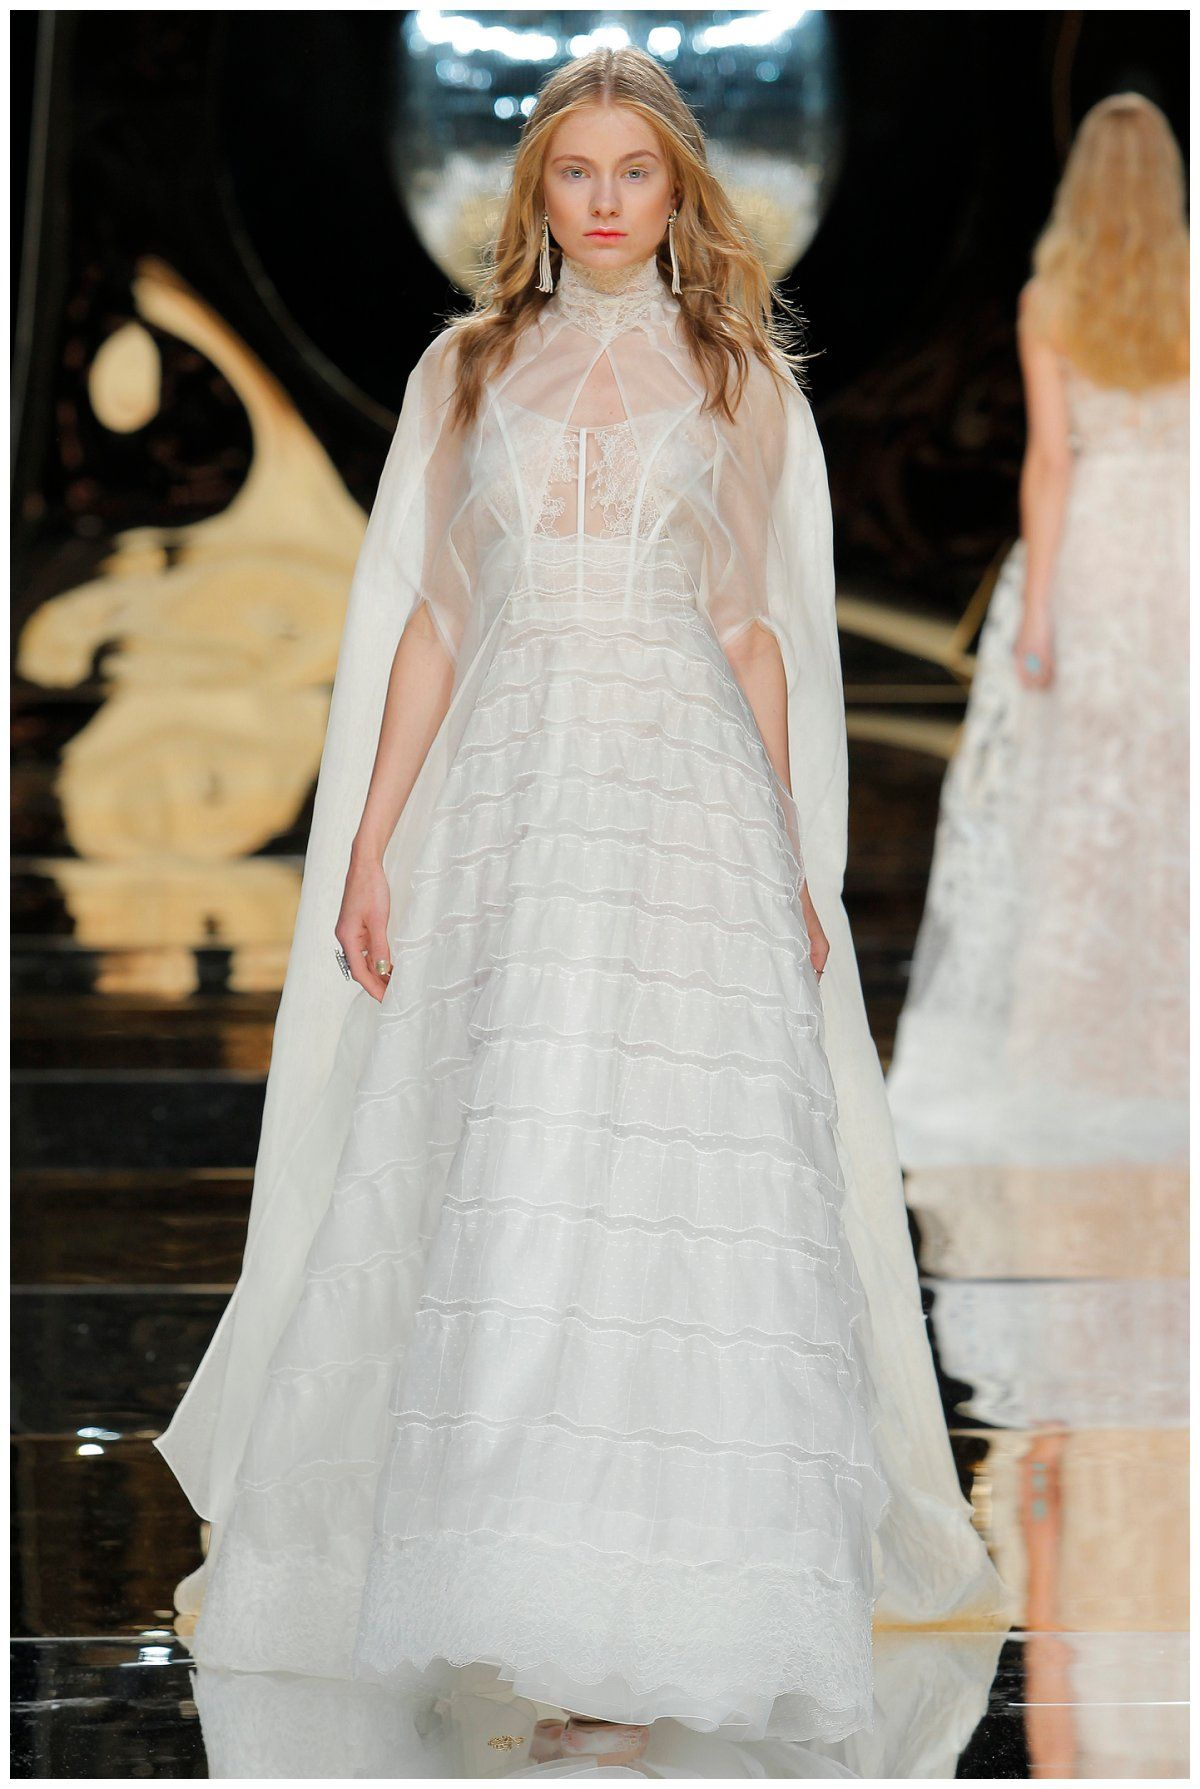 Conservative wedding dresses  Wedding dress by Yolan Cris from the Yolan Cris Bridal Collection